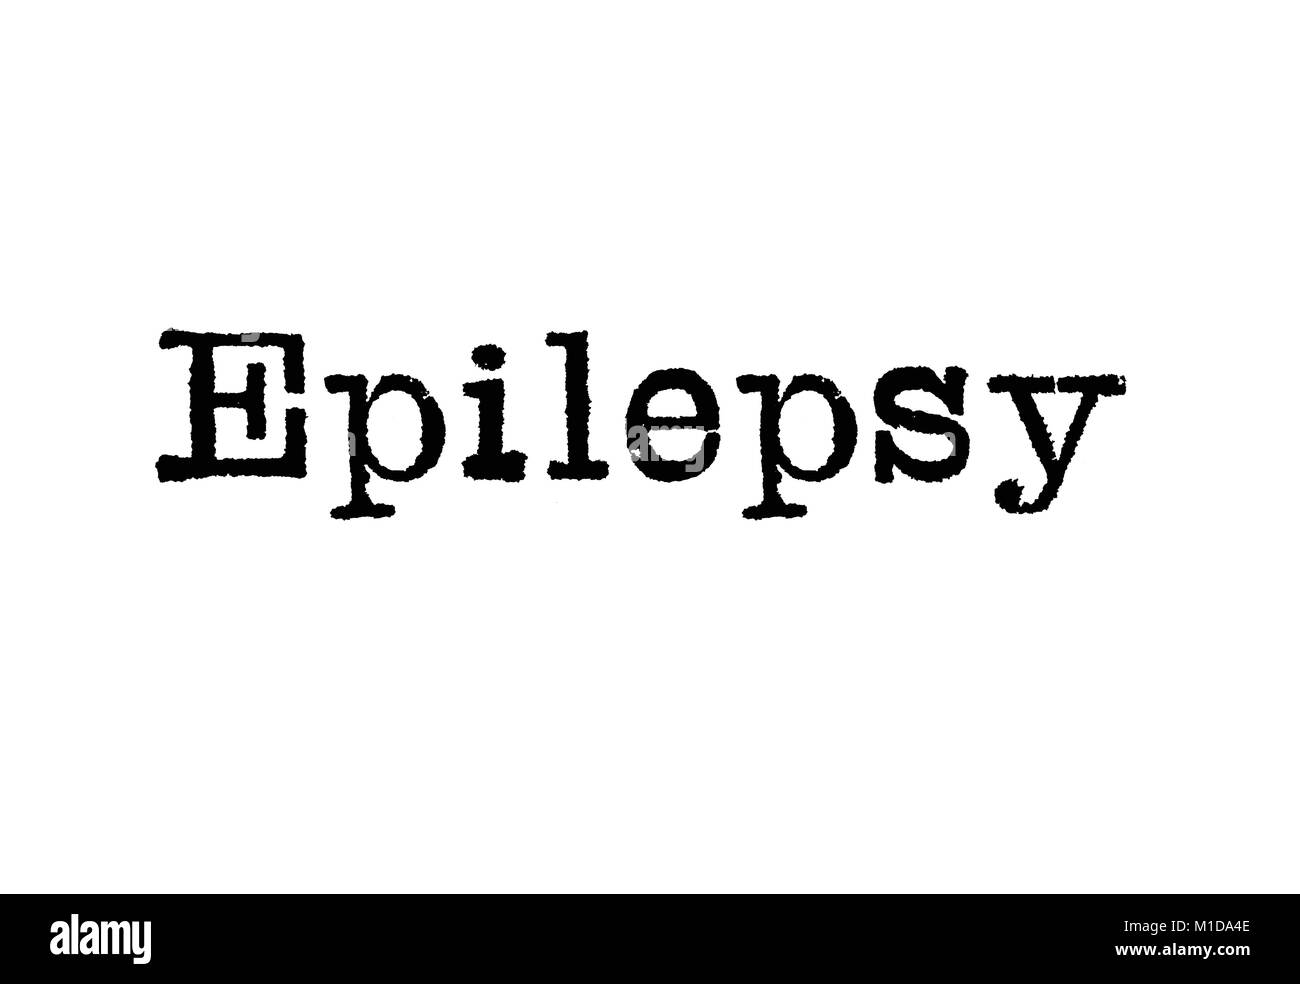 The word Epilepsy from a typewriter on a white background - Stock Image